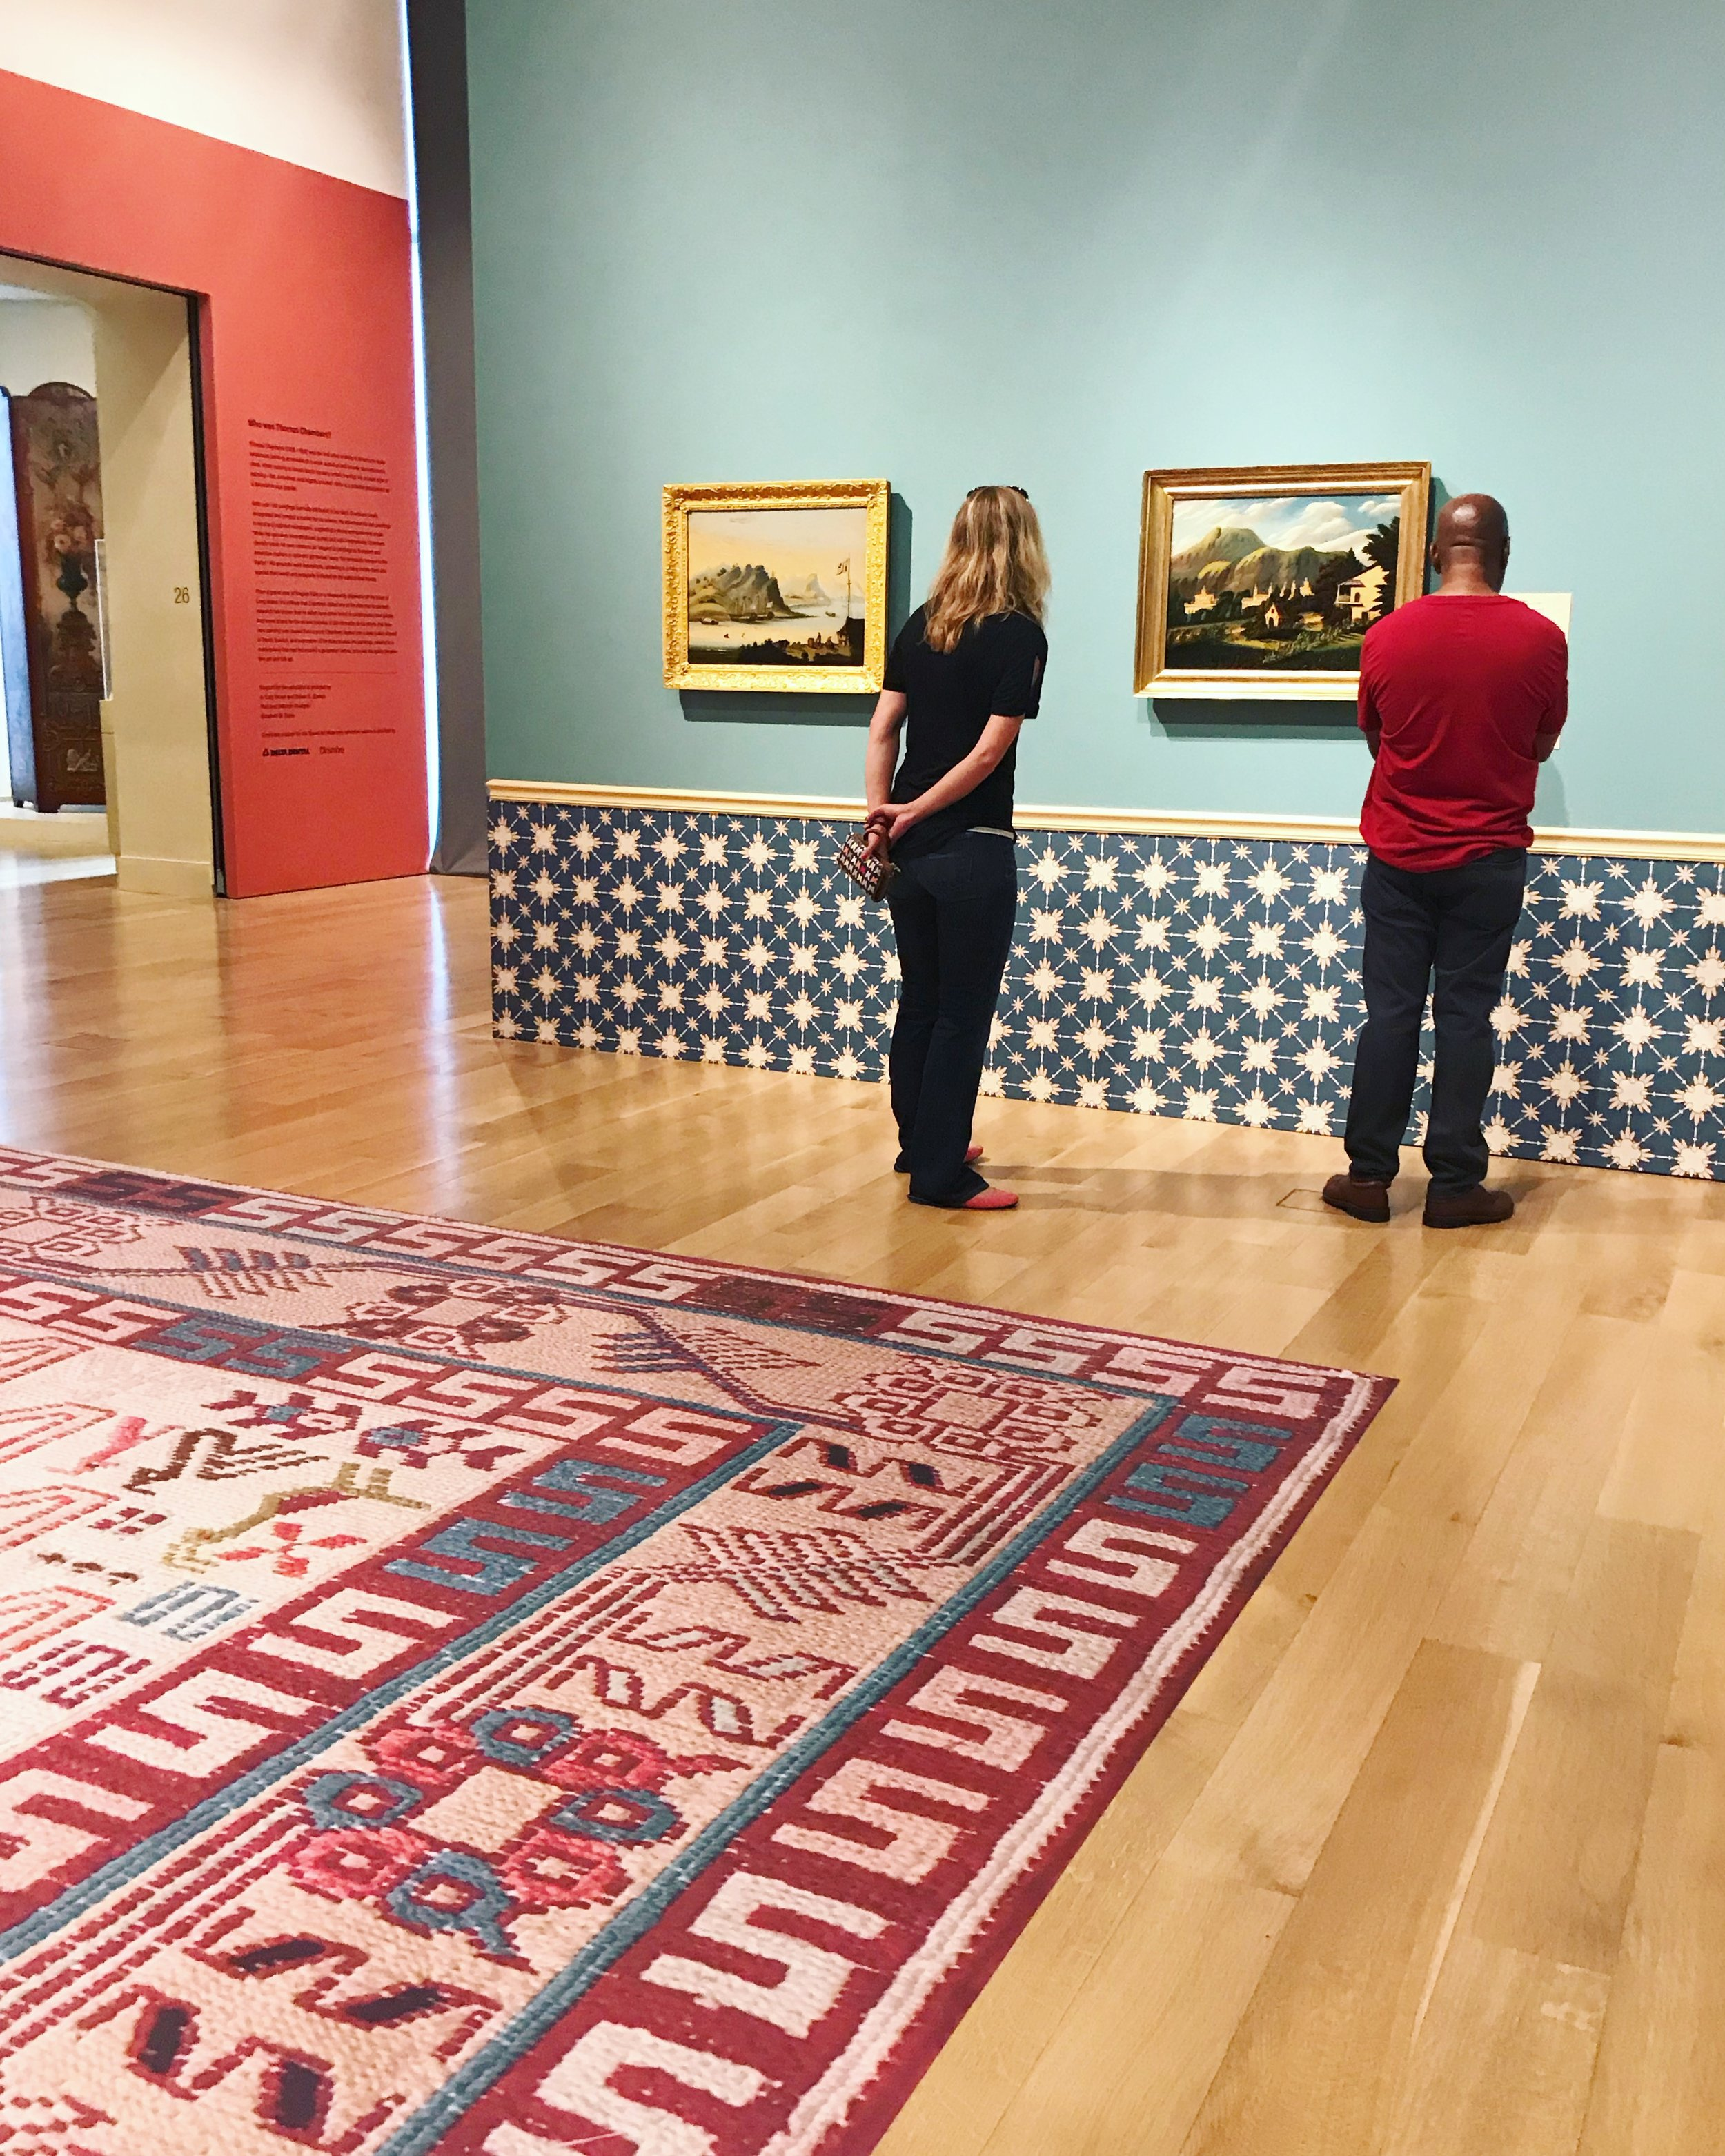 """The interior of the exhibition was designed in the style of """"American Fancy,"""" an over-the-top décor style popular in the period of Thomas Chambers. The space included a custom wallpaper pattern as well as photographs of rugs reproduced in vinyl on the floor."""